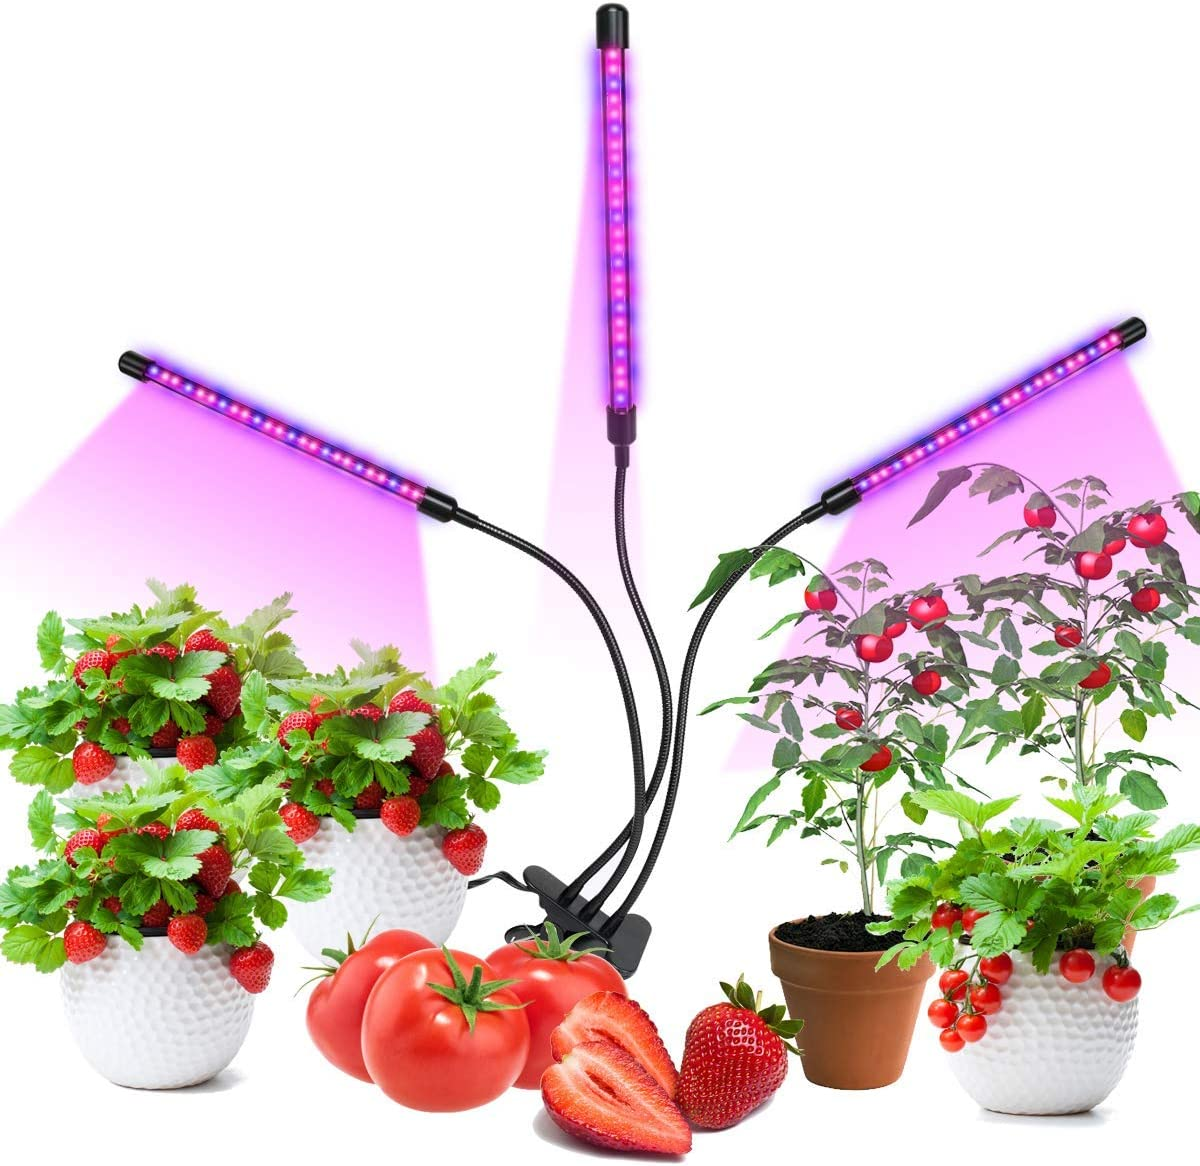 Grow Light, Grow Lights for Indoor Plants, 45W 90 LED Bulbs Timming Plant Grow Lamp with Red, Blue Spectrum, 3 9 12H Timer, 3-Head Divide Control Adjustable Gooseneck, 8 Dimmable Levels